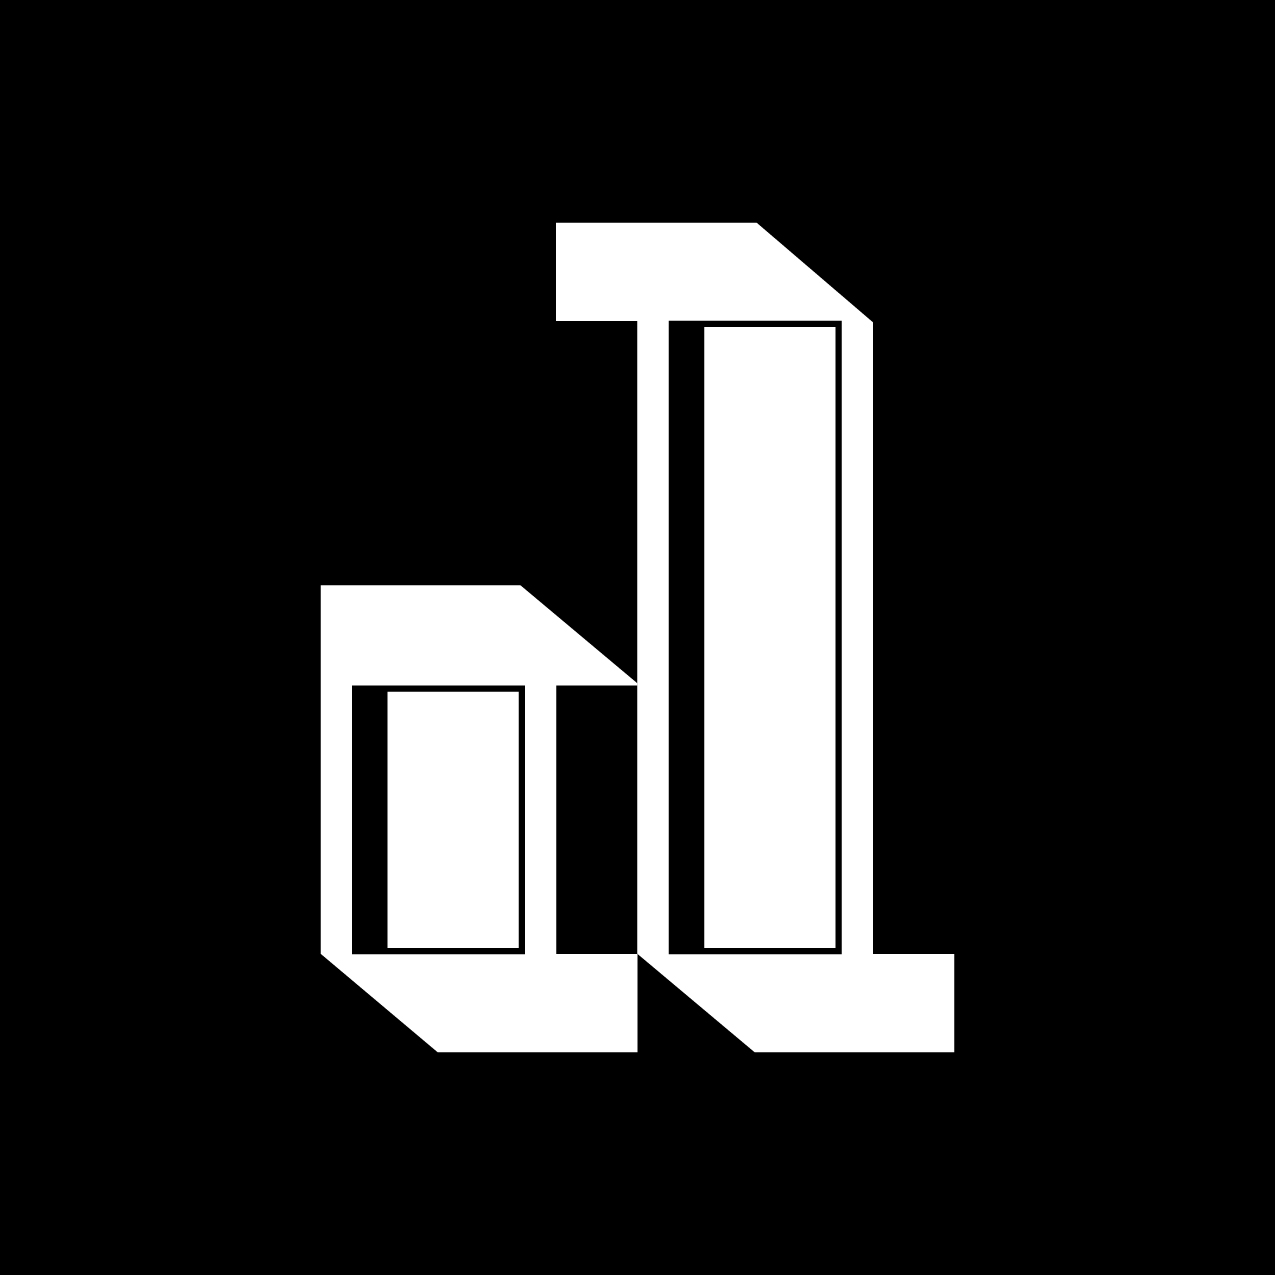 Letter D11 design by Furia